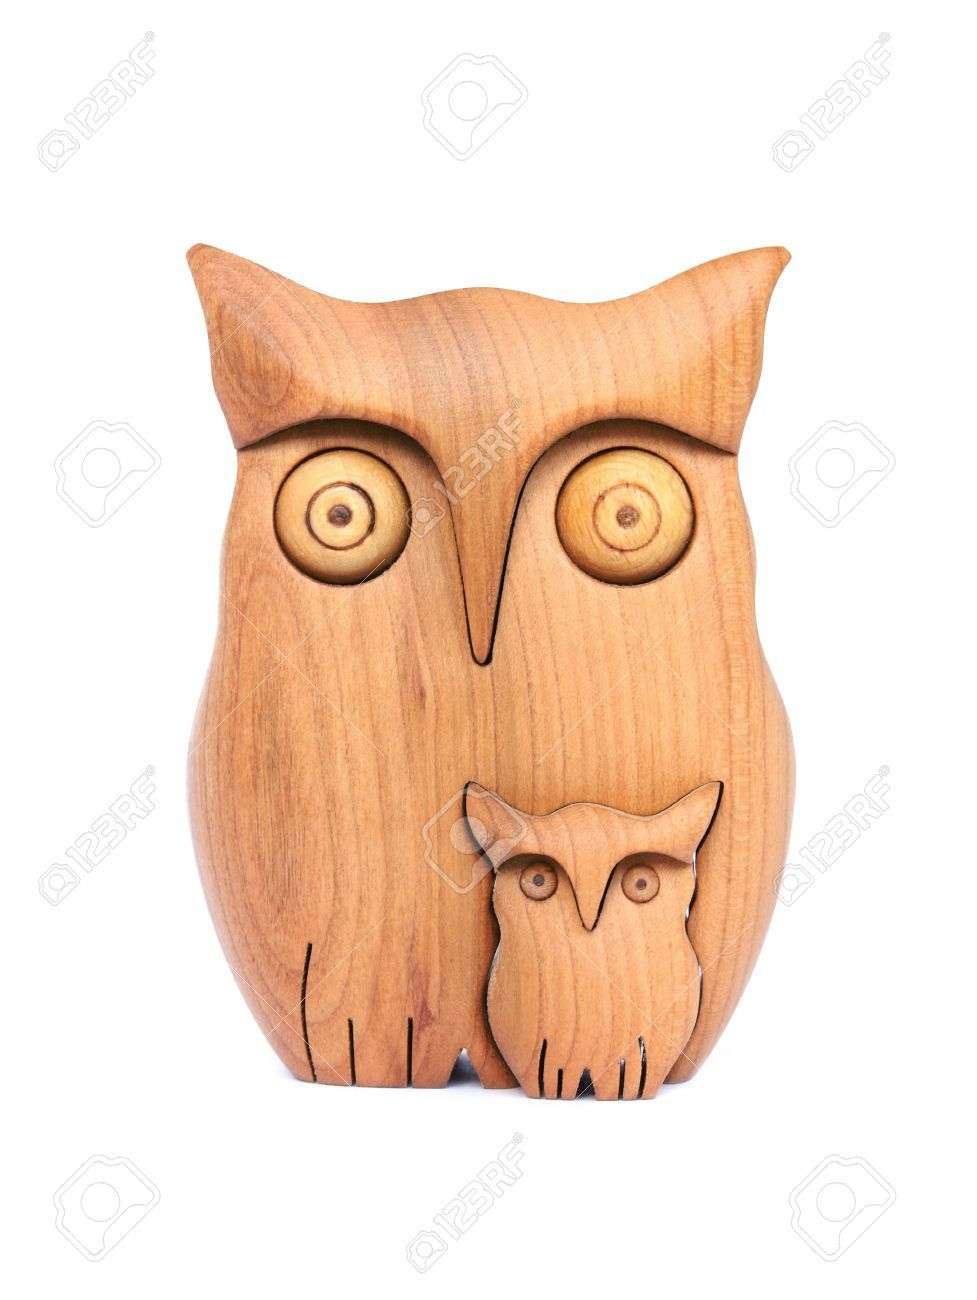 Wood carved owls for sale google search owls pinterest owl